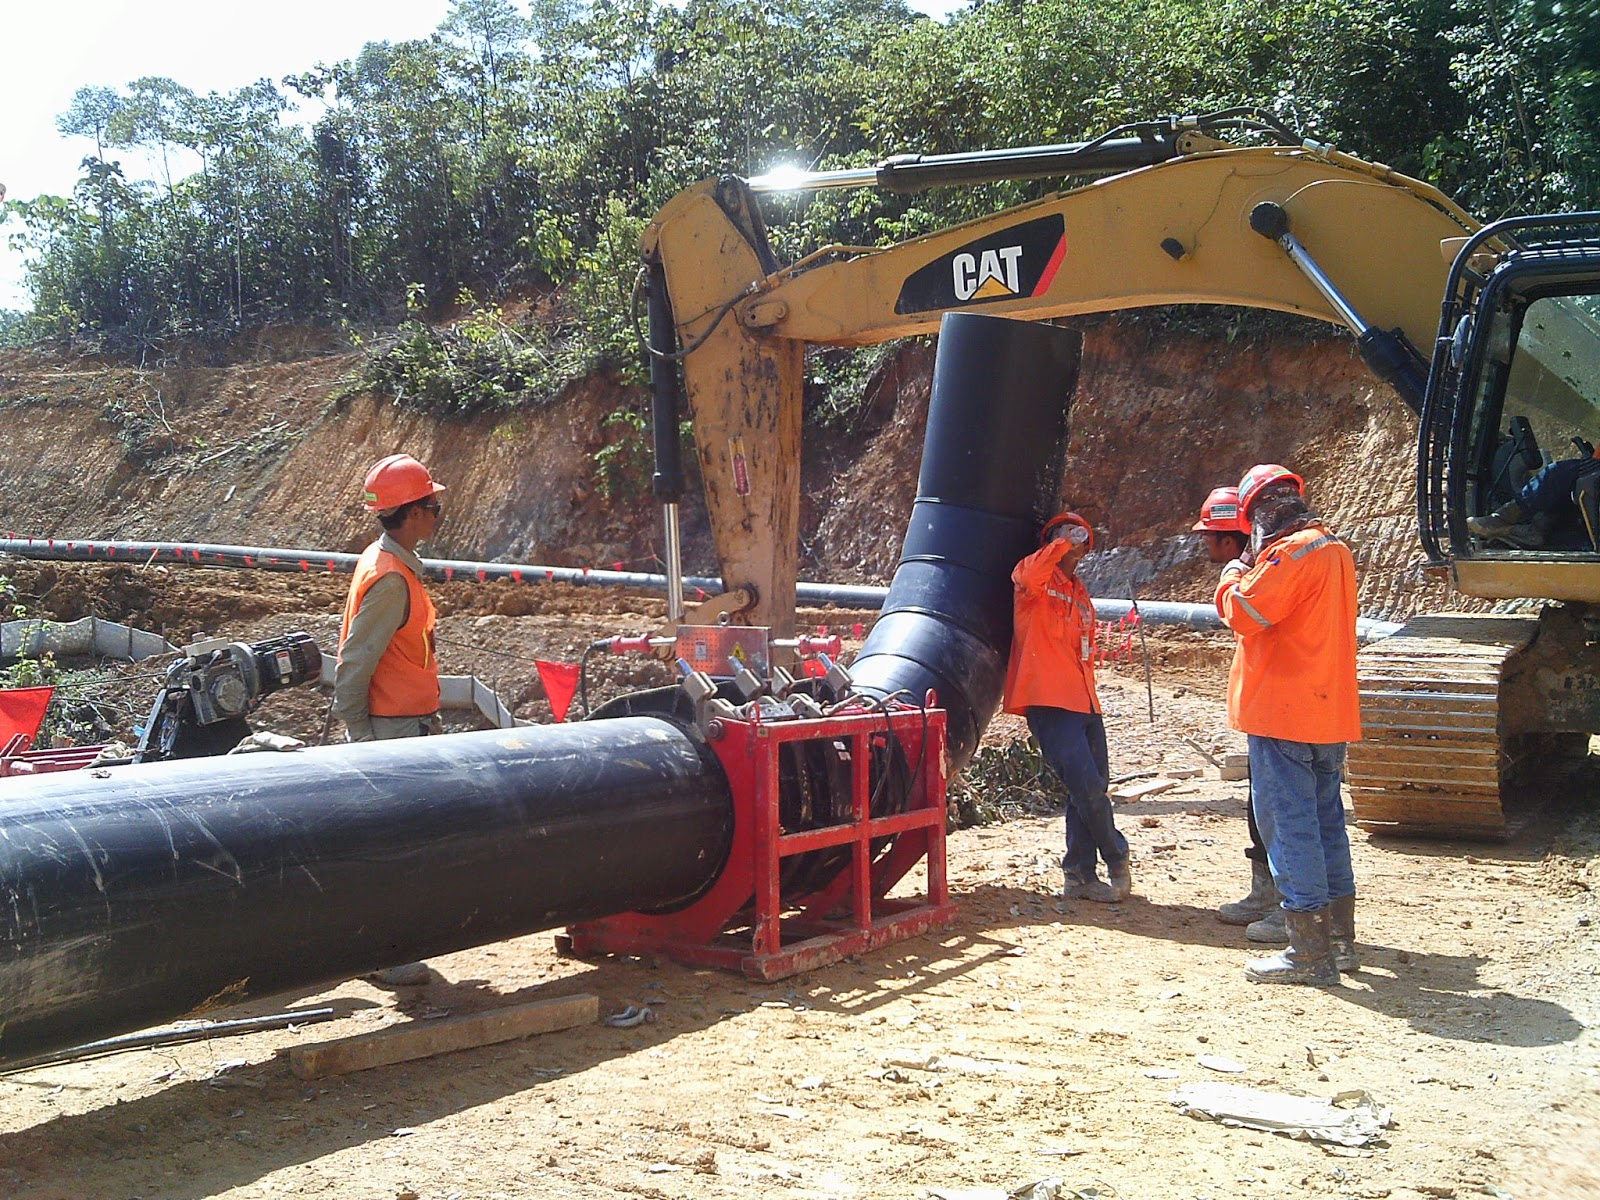 http://rentalbuttfusion.blogspot.co.id/2013/05/proyek-martabe-gold-mining-dan-pipa-hdpe.html